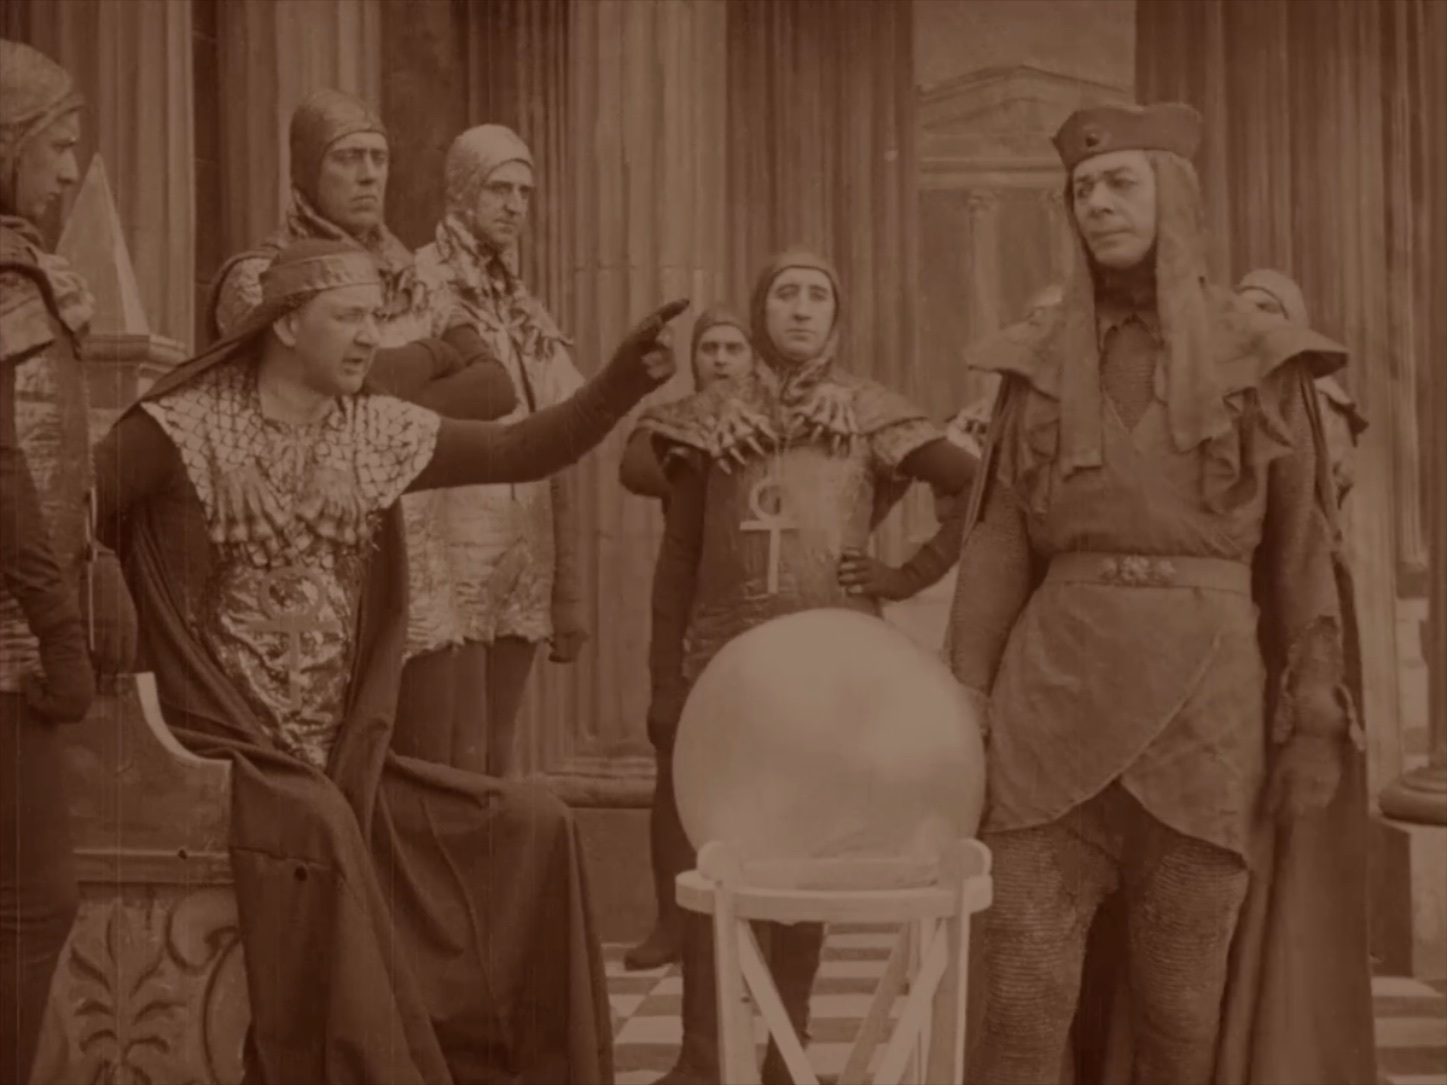 message-from-mars-a-1913-001-court-scene-1000x750.jpg